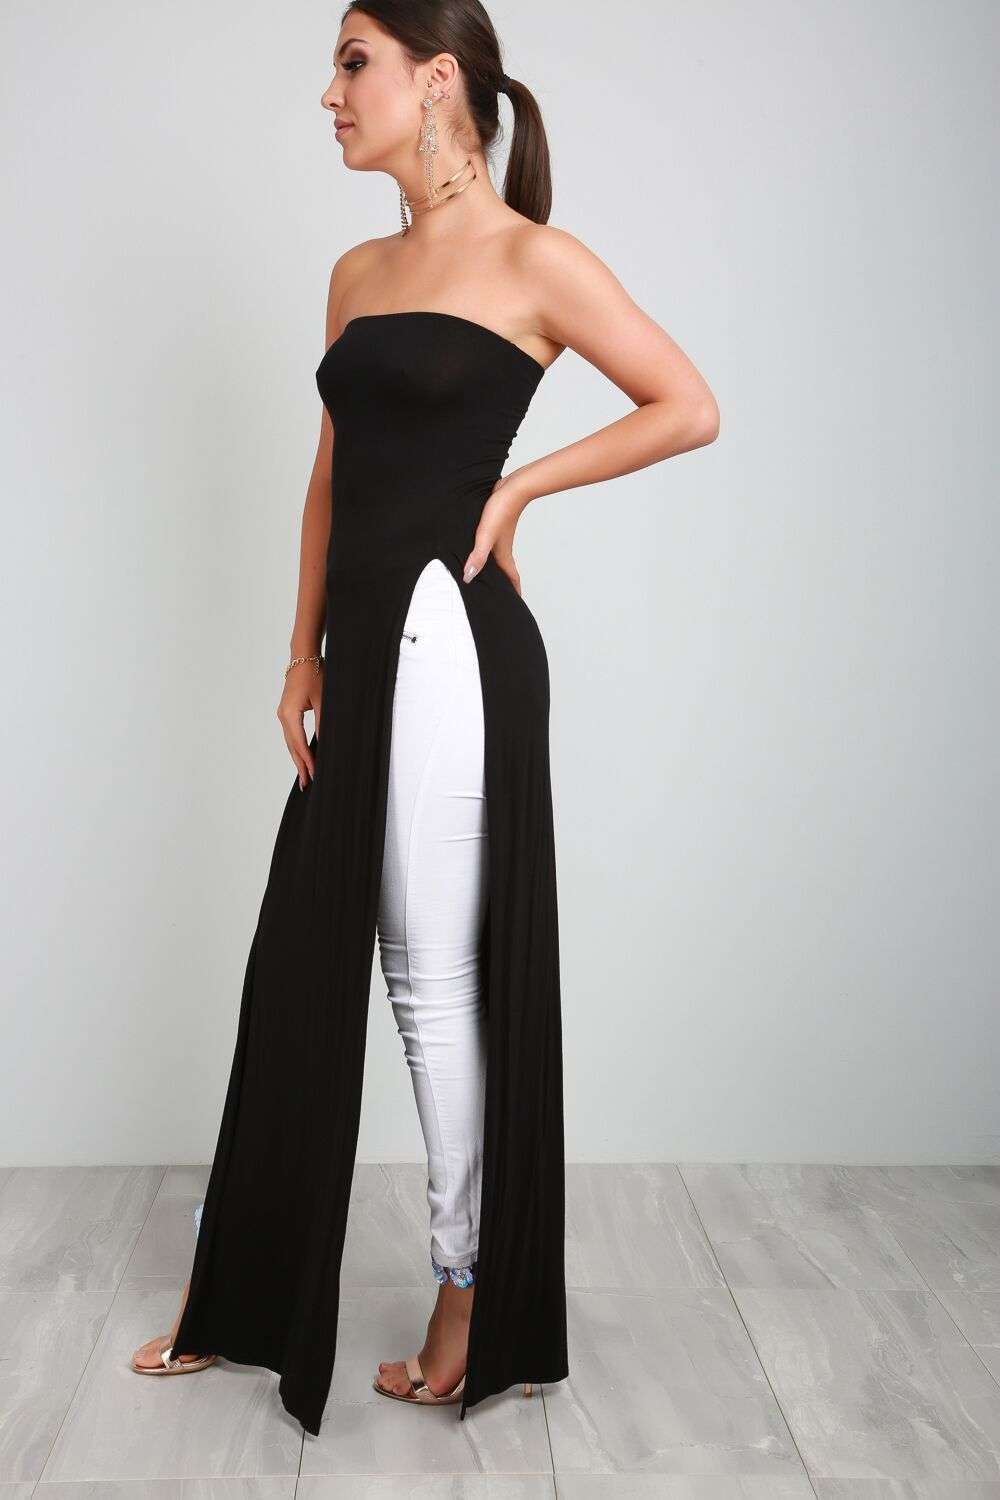 Kara Bardot Side Split Jersey Maxi Dress - bejealous-com